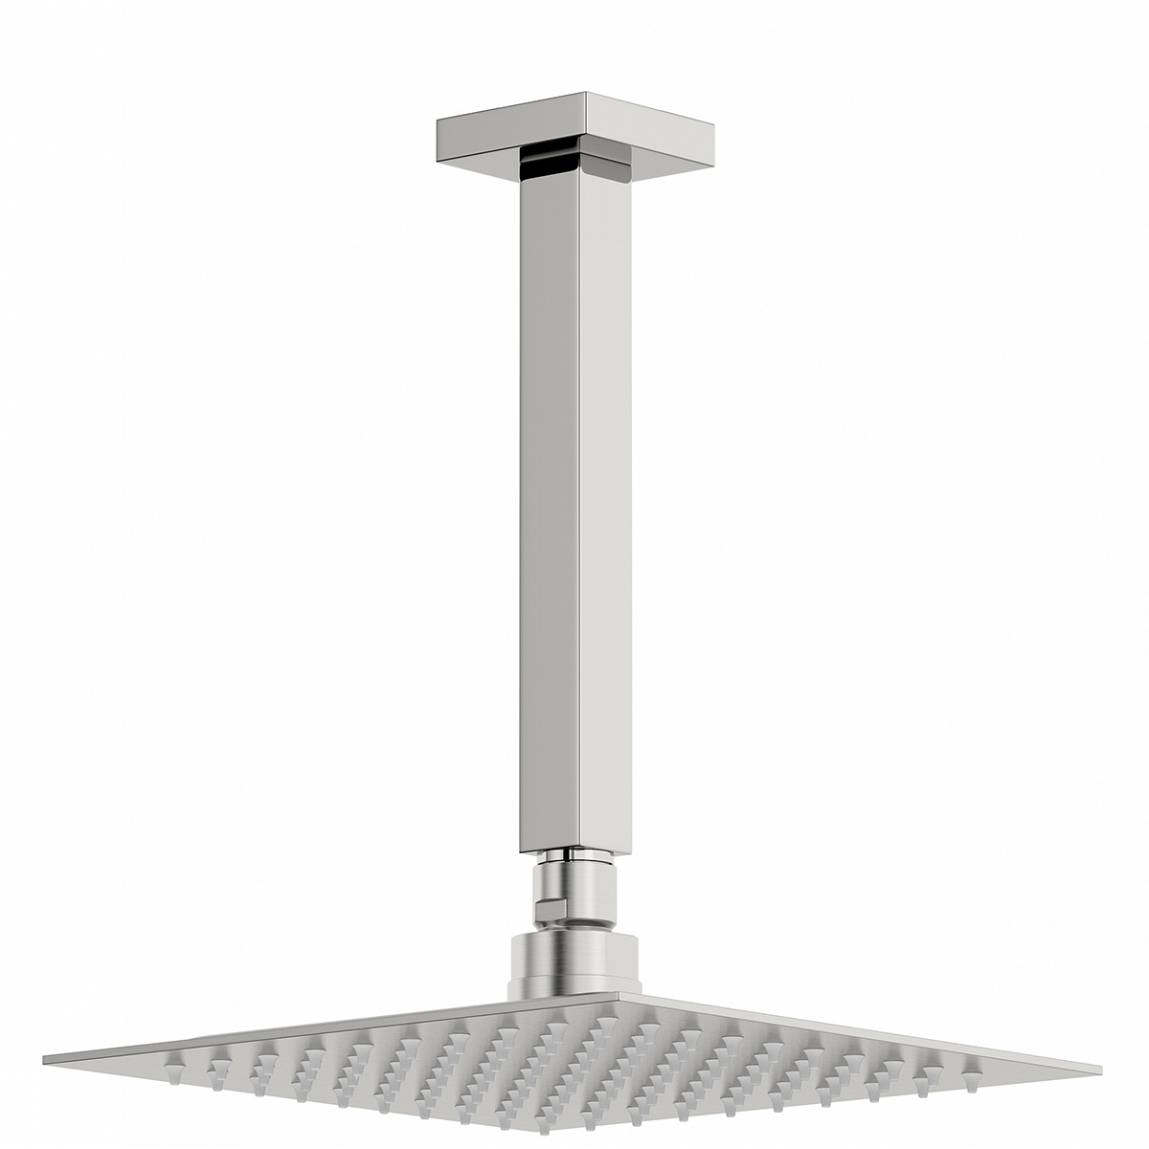 Image of Incus 200mm Shower Head & Square Ceiling Arm